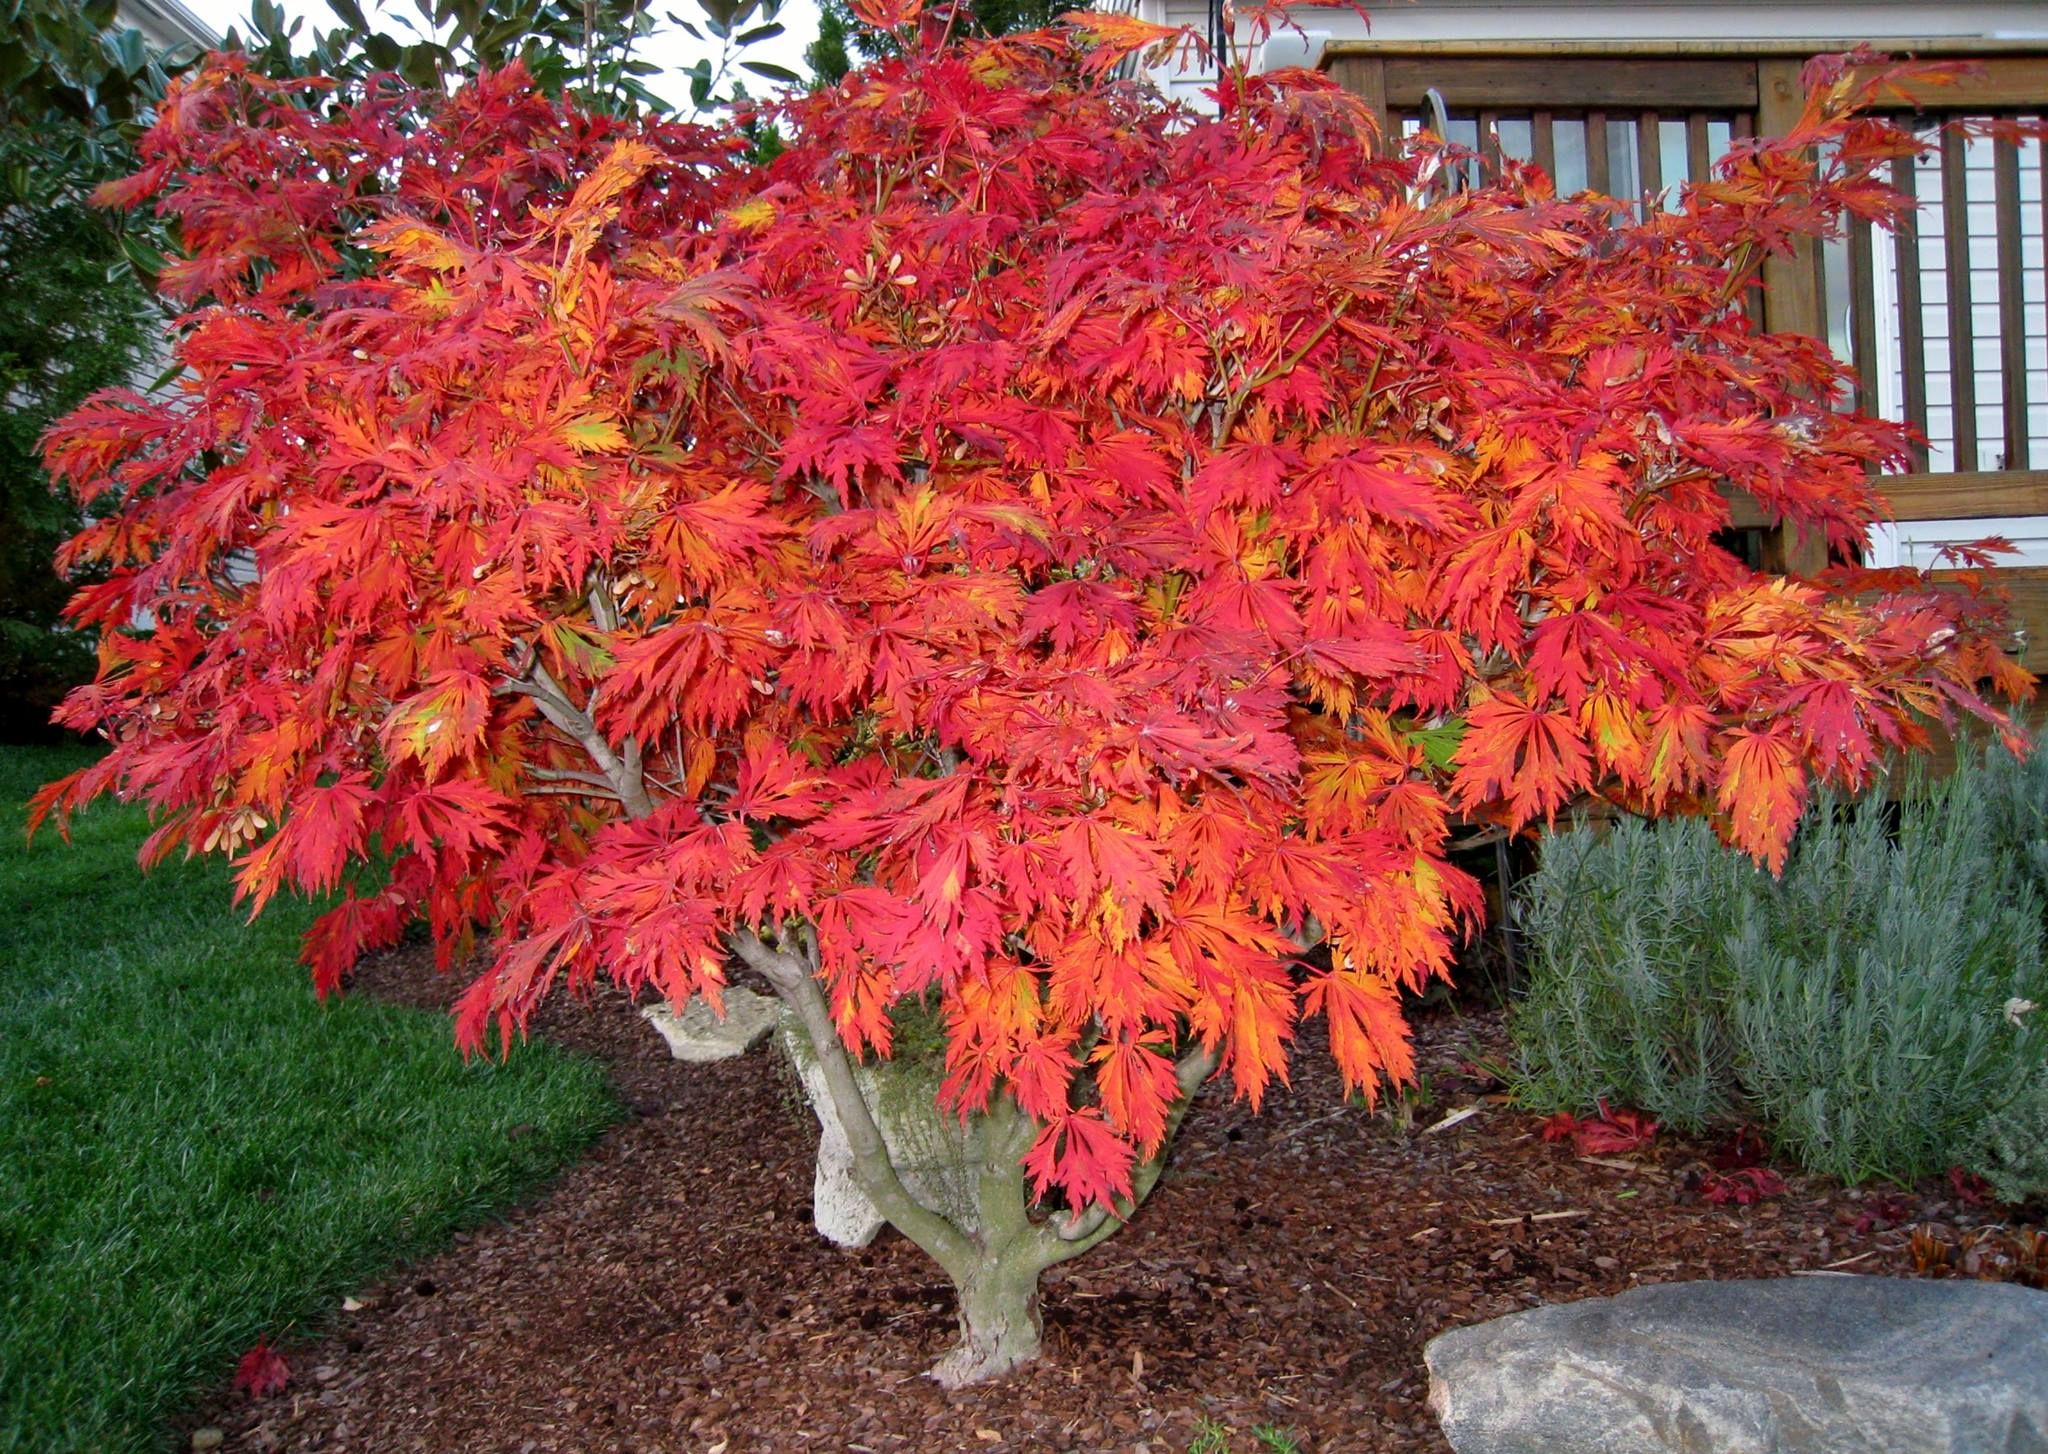 How to care for a fern leaf japanese maple - Japanese Maple Acer Japonicum Aconitifolium Amazing Structure And Fall Color